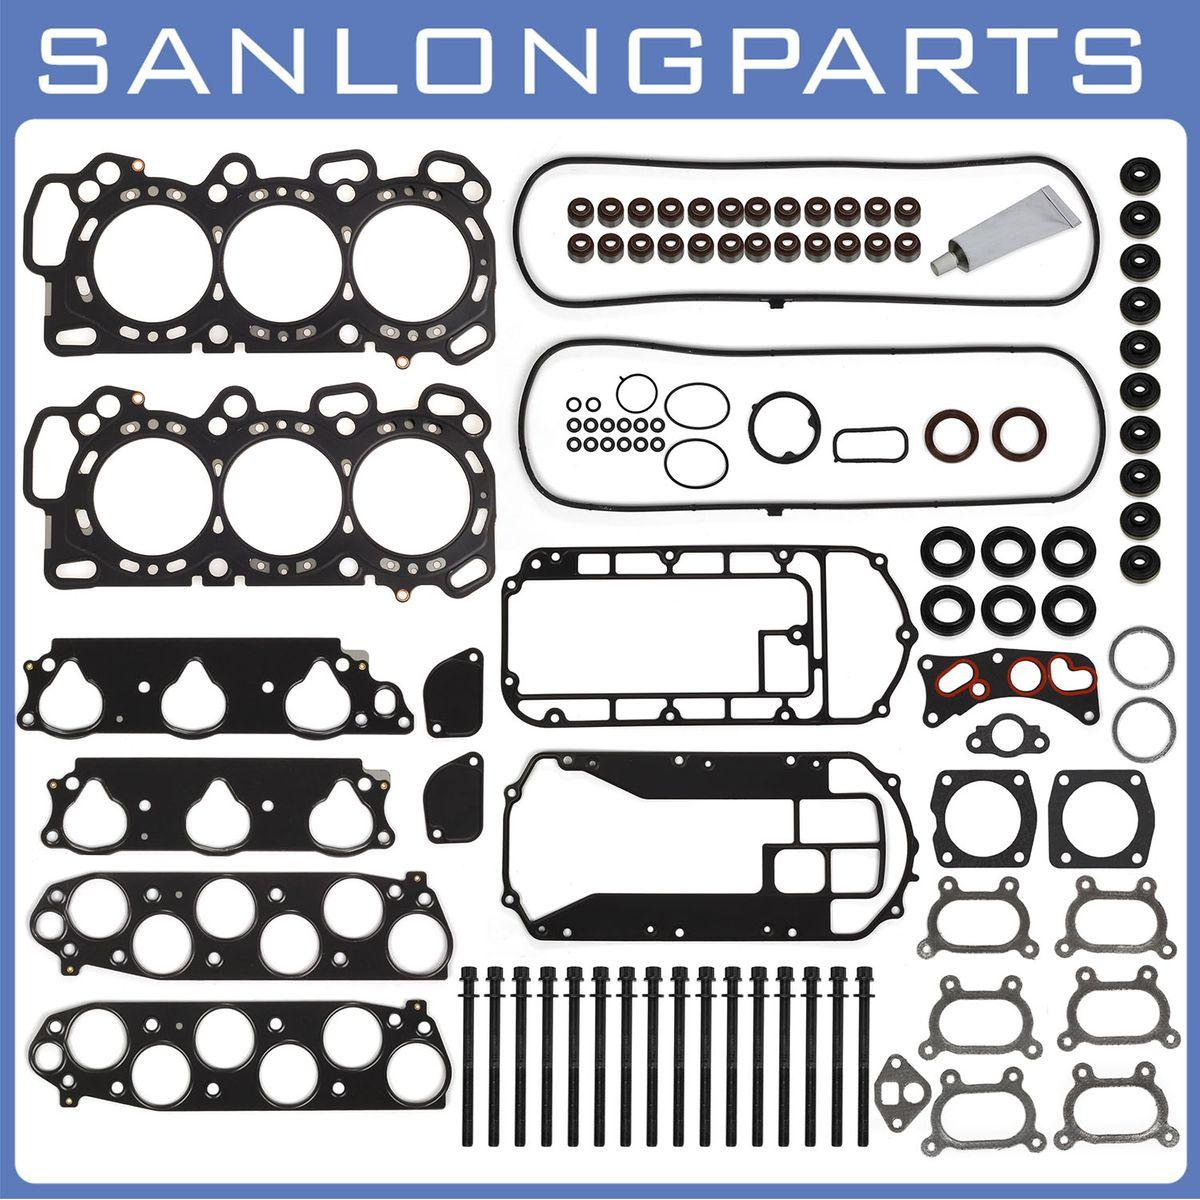 Acura Tl Cylinder Head Gasket Sets: For 05-09 Acura MDX TL Honda Head Gasket Bolts Set 3.2 3